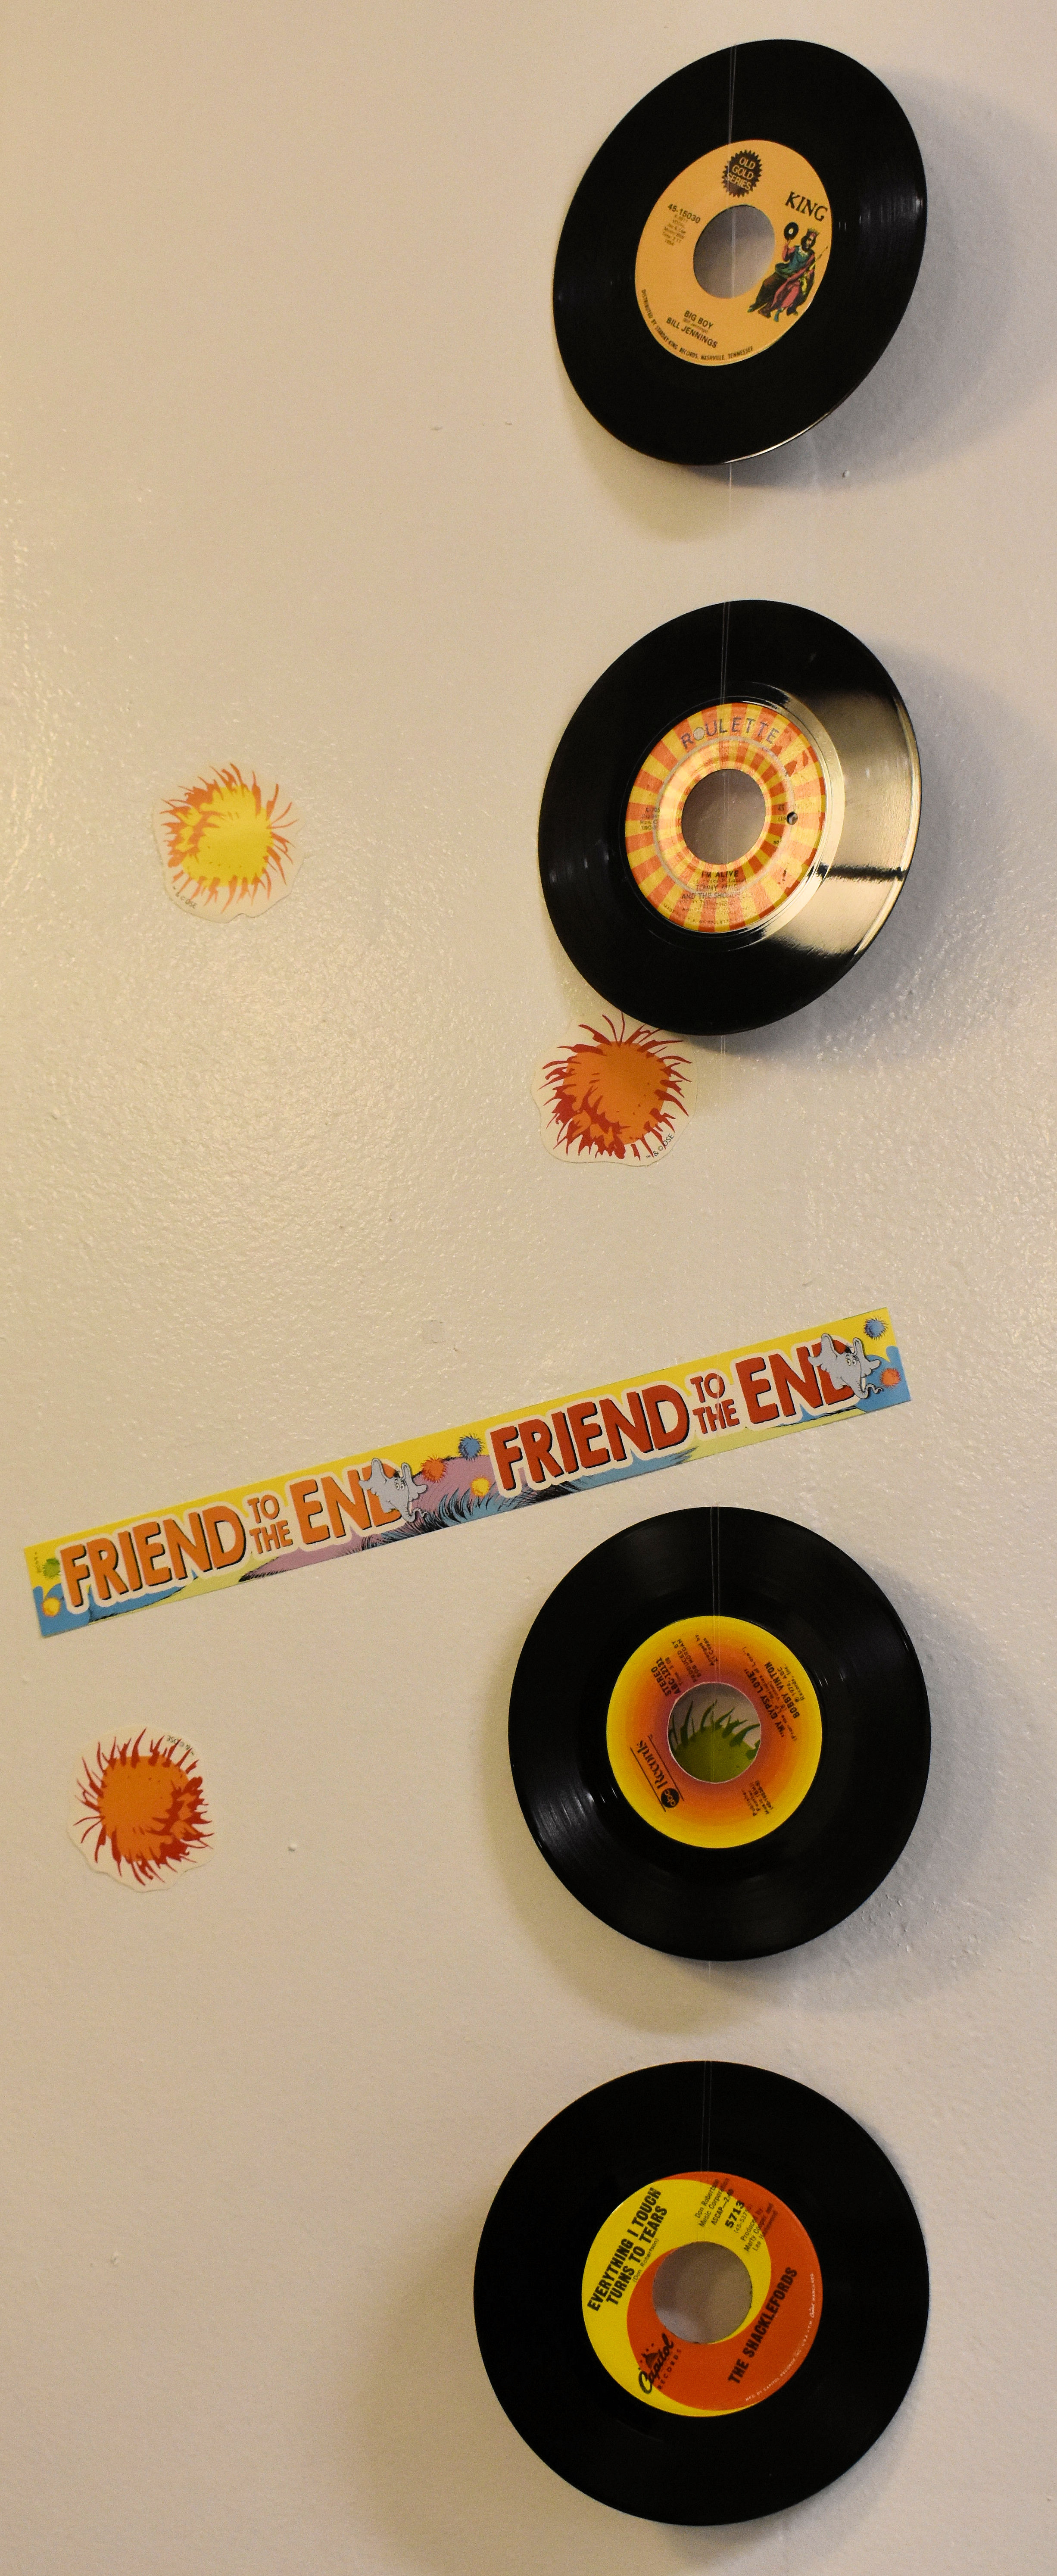 45 rpm records on a wall